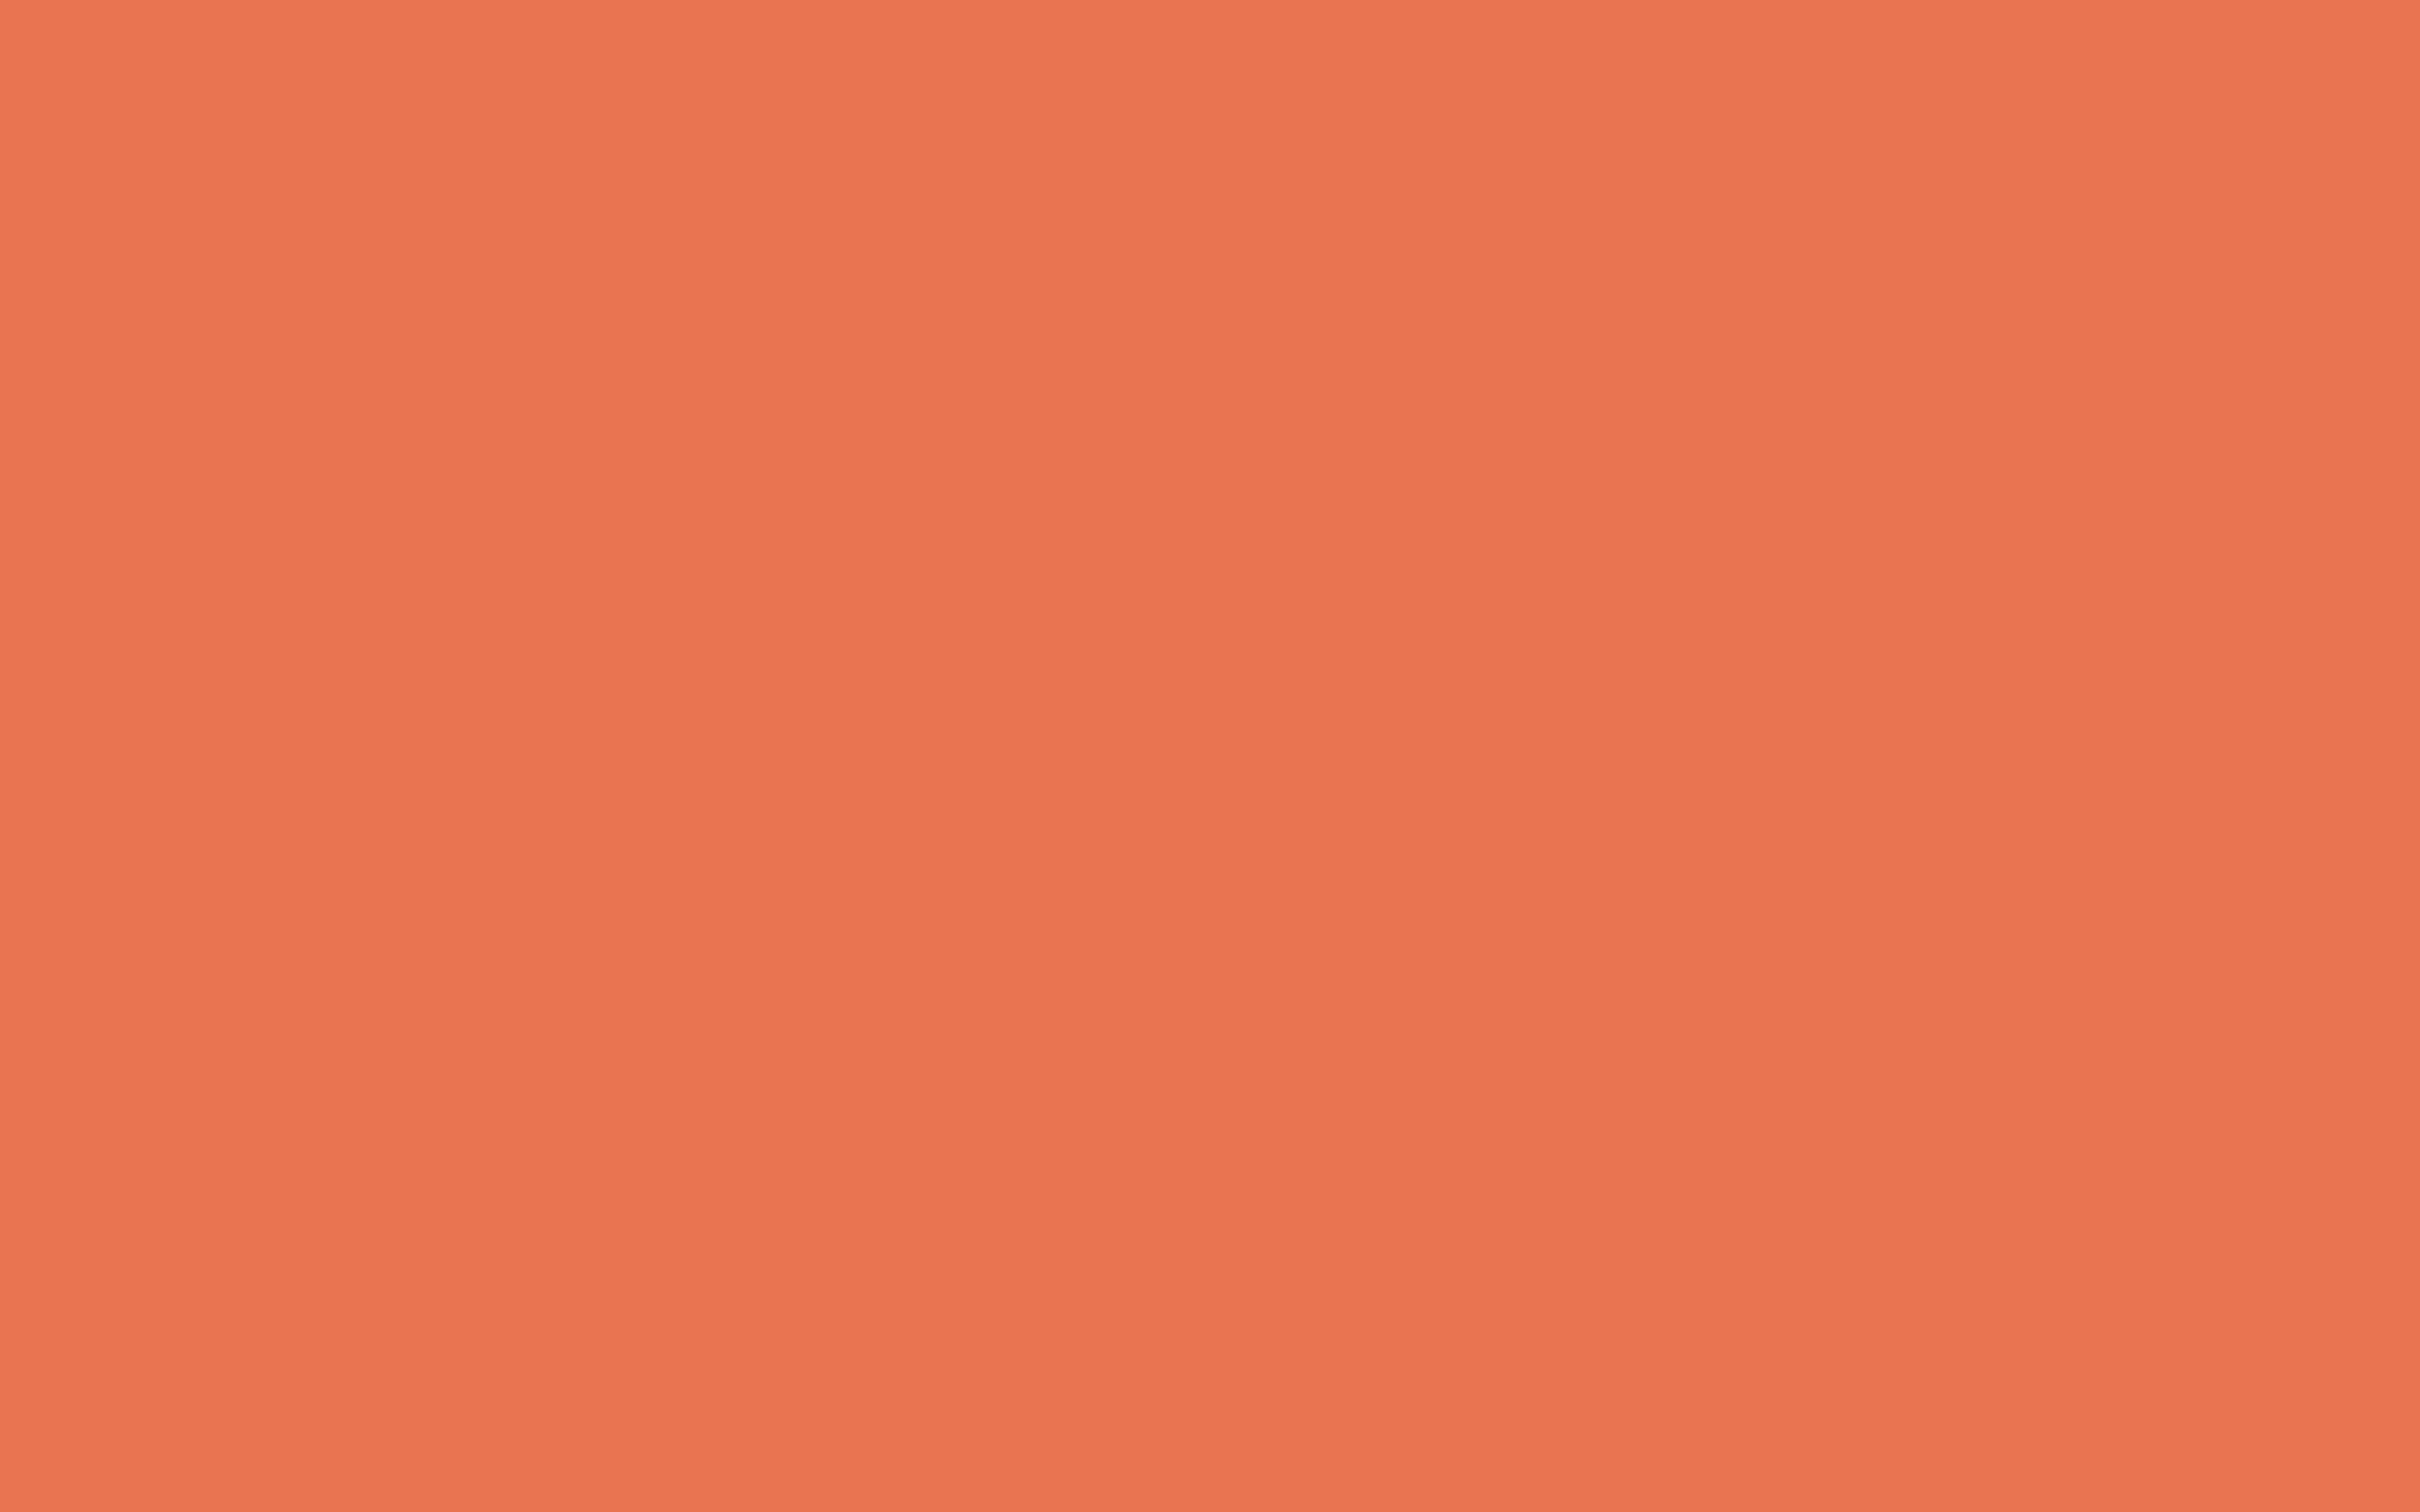 2560x1600 Light Red Ochre Solid Color Background